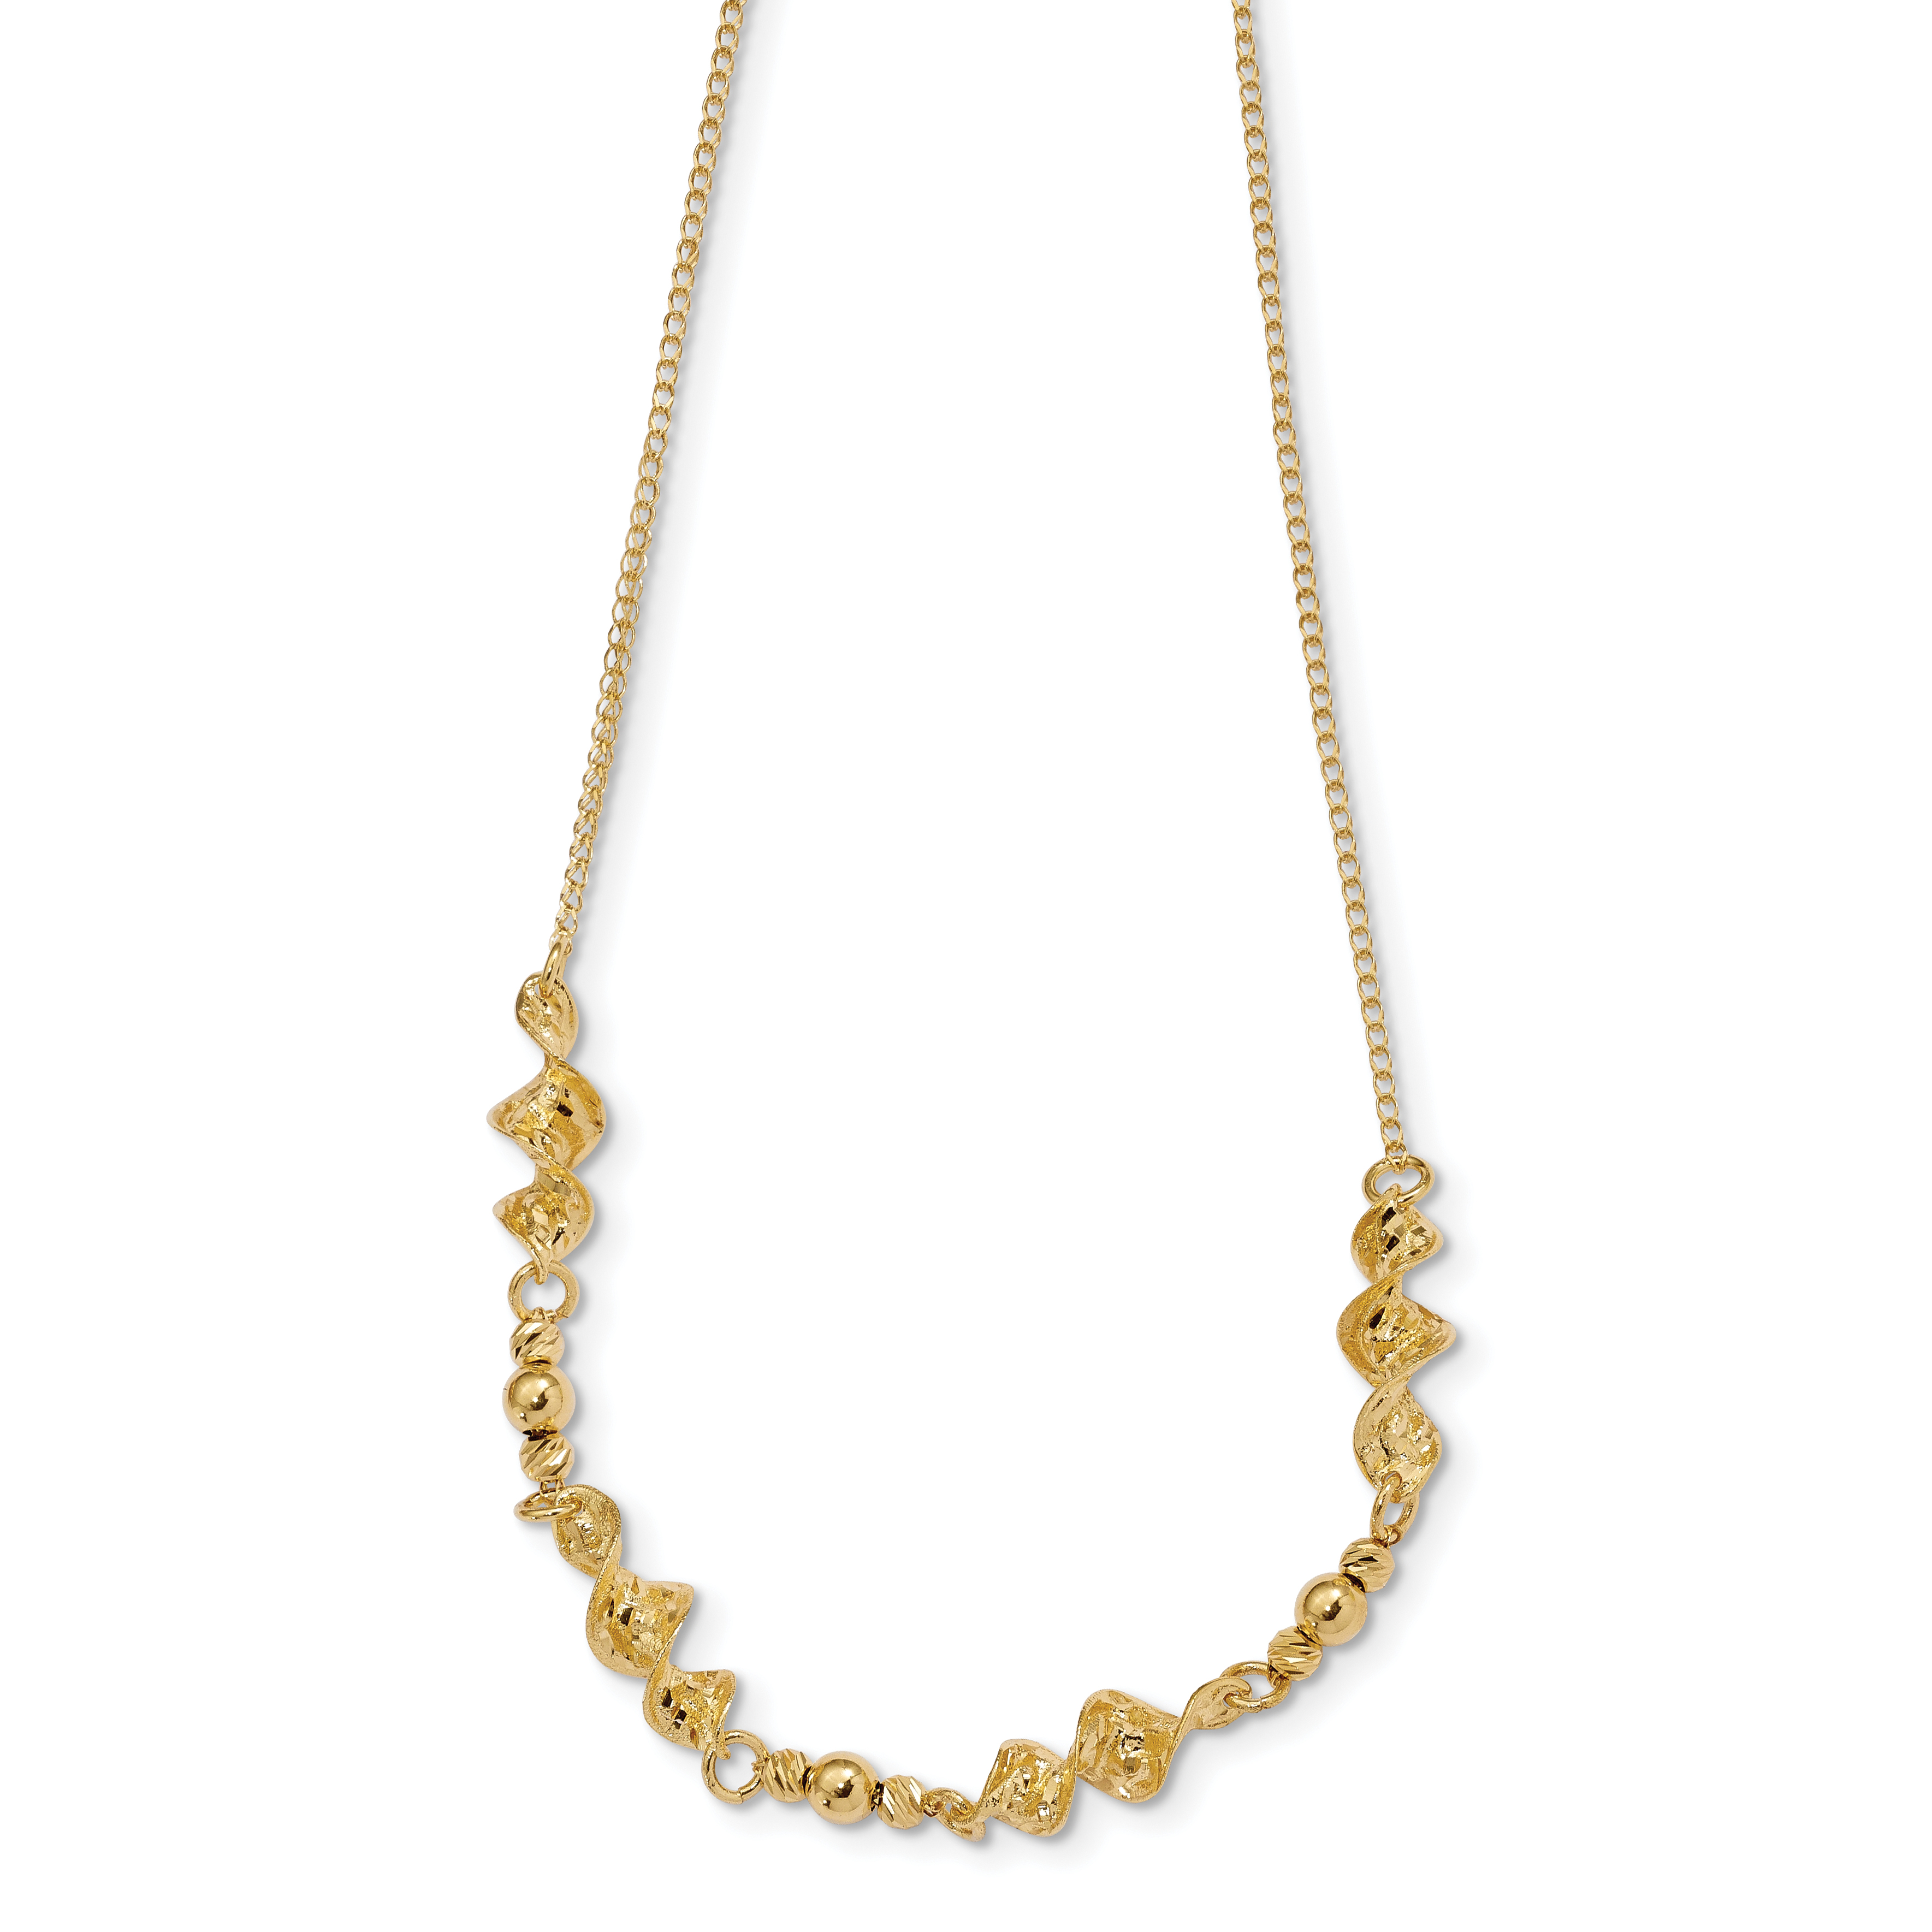 Leslie's 14K Polished & D/C Twisted w/1 in ext Necklace